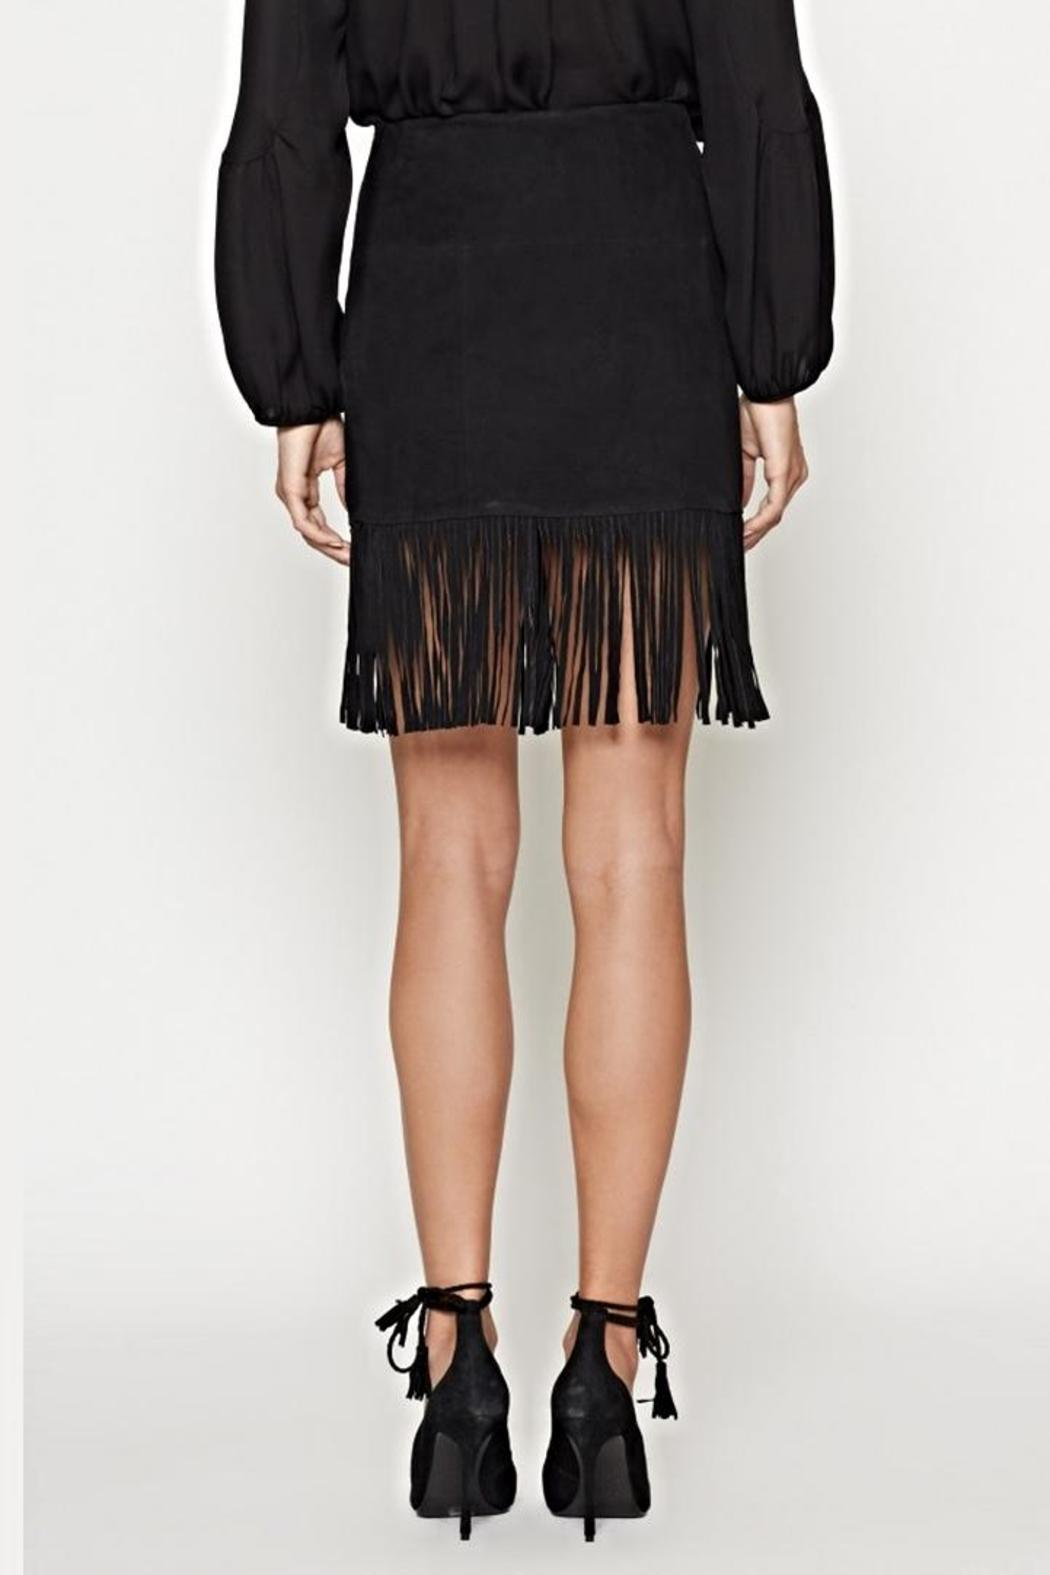 Joie Lozita Suede Skirt - Side Cropped Image